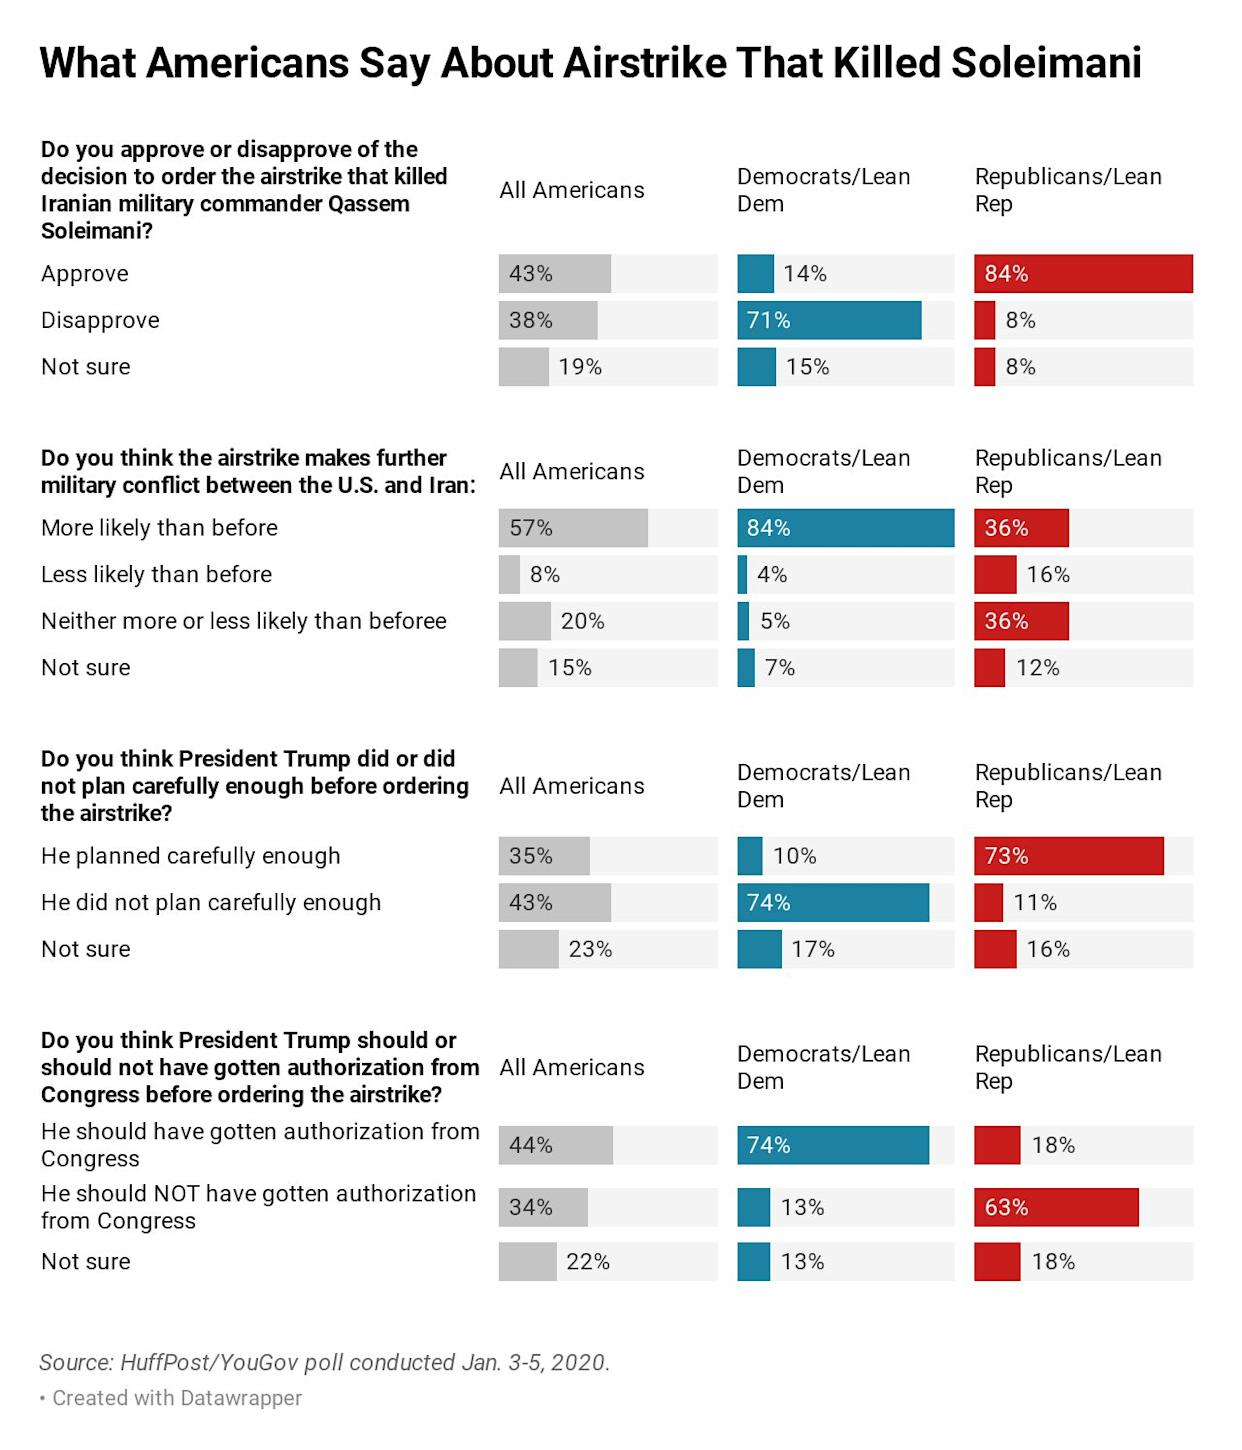 Most of the public sees the strike as increasing the chances of further military conflict.